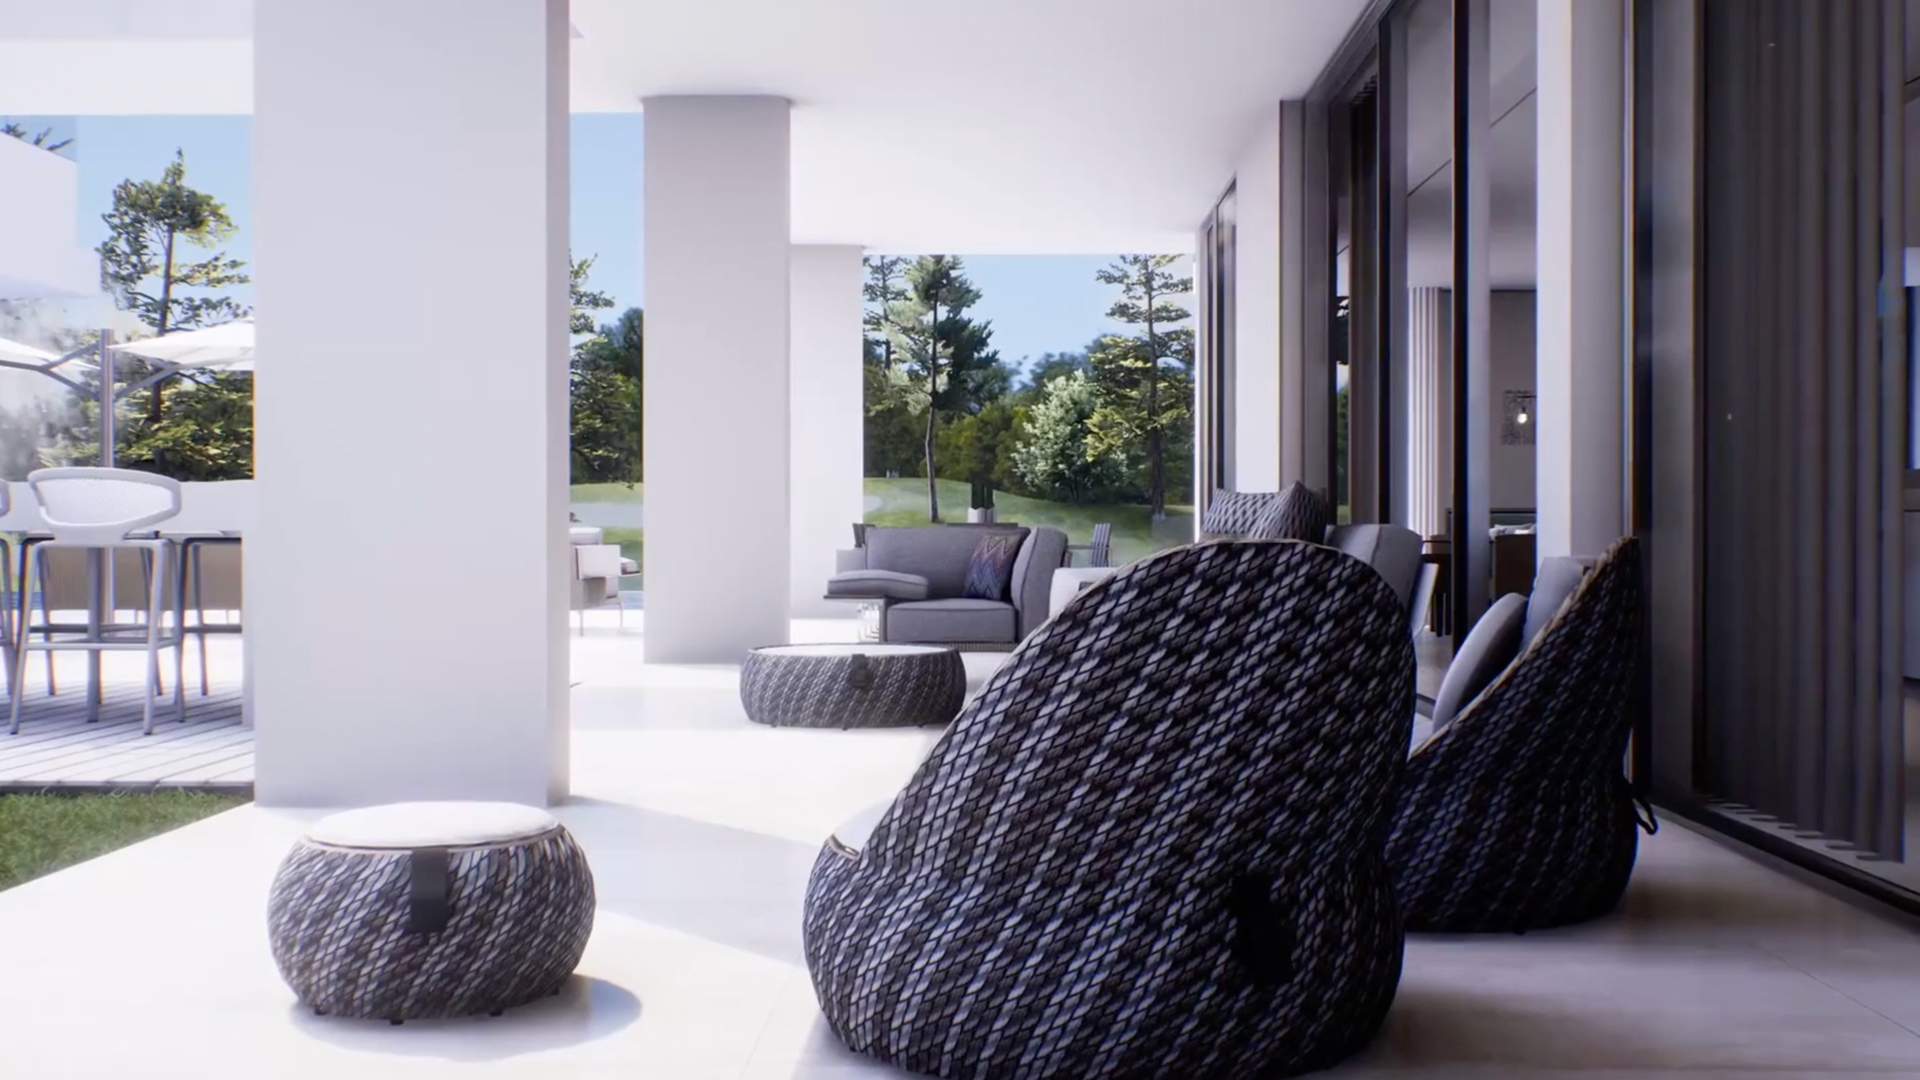 INTERIOR DESIGN, LUXURY LIVING CONCEPTS AND OUTDOOR LIVING ALGARVE, PORTUGAL